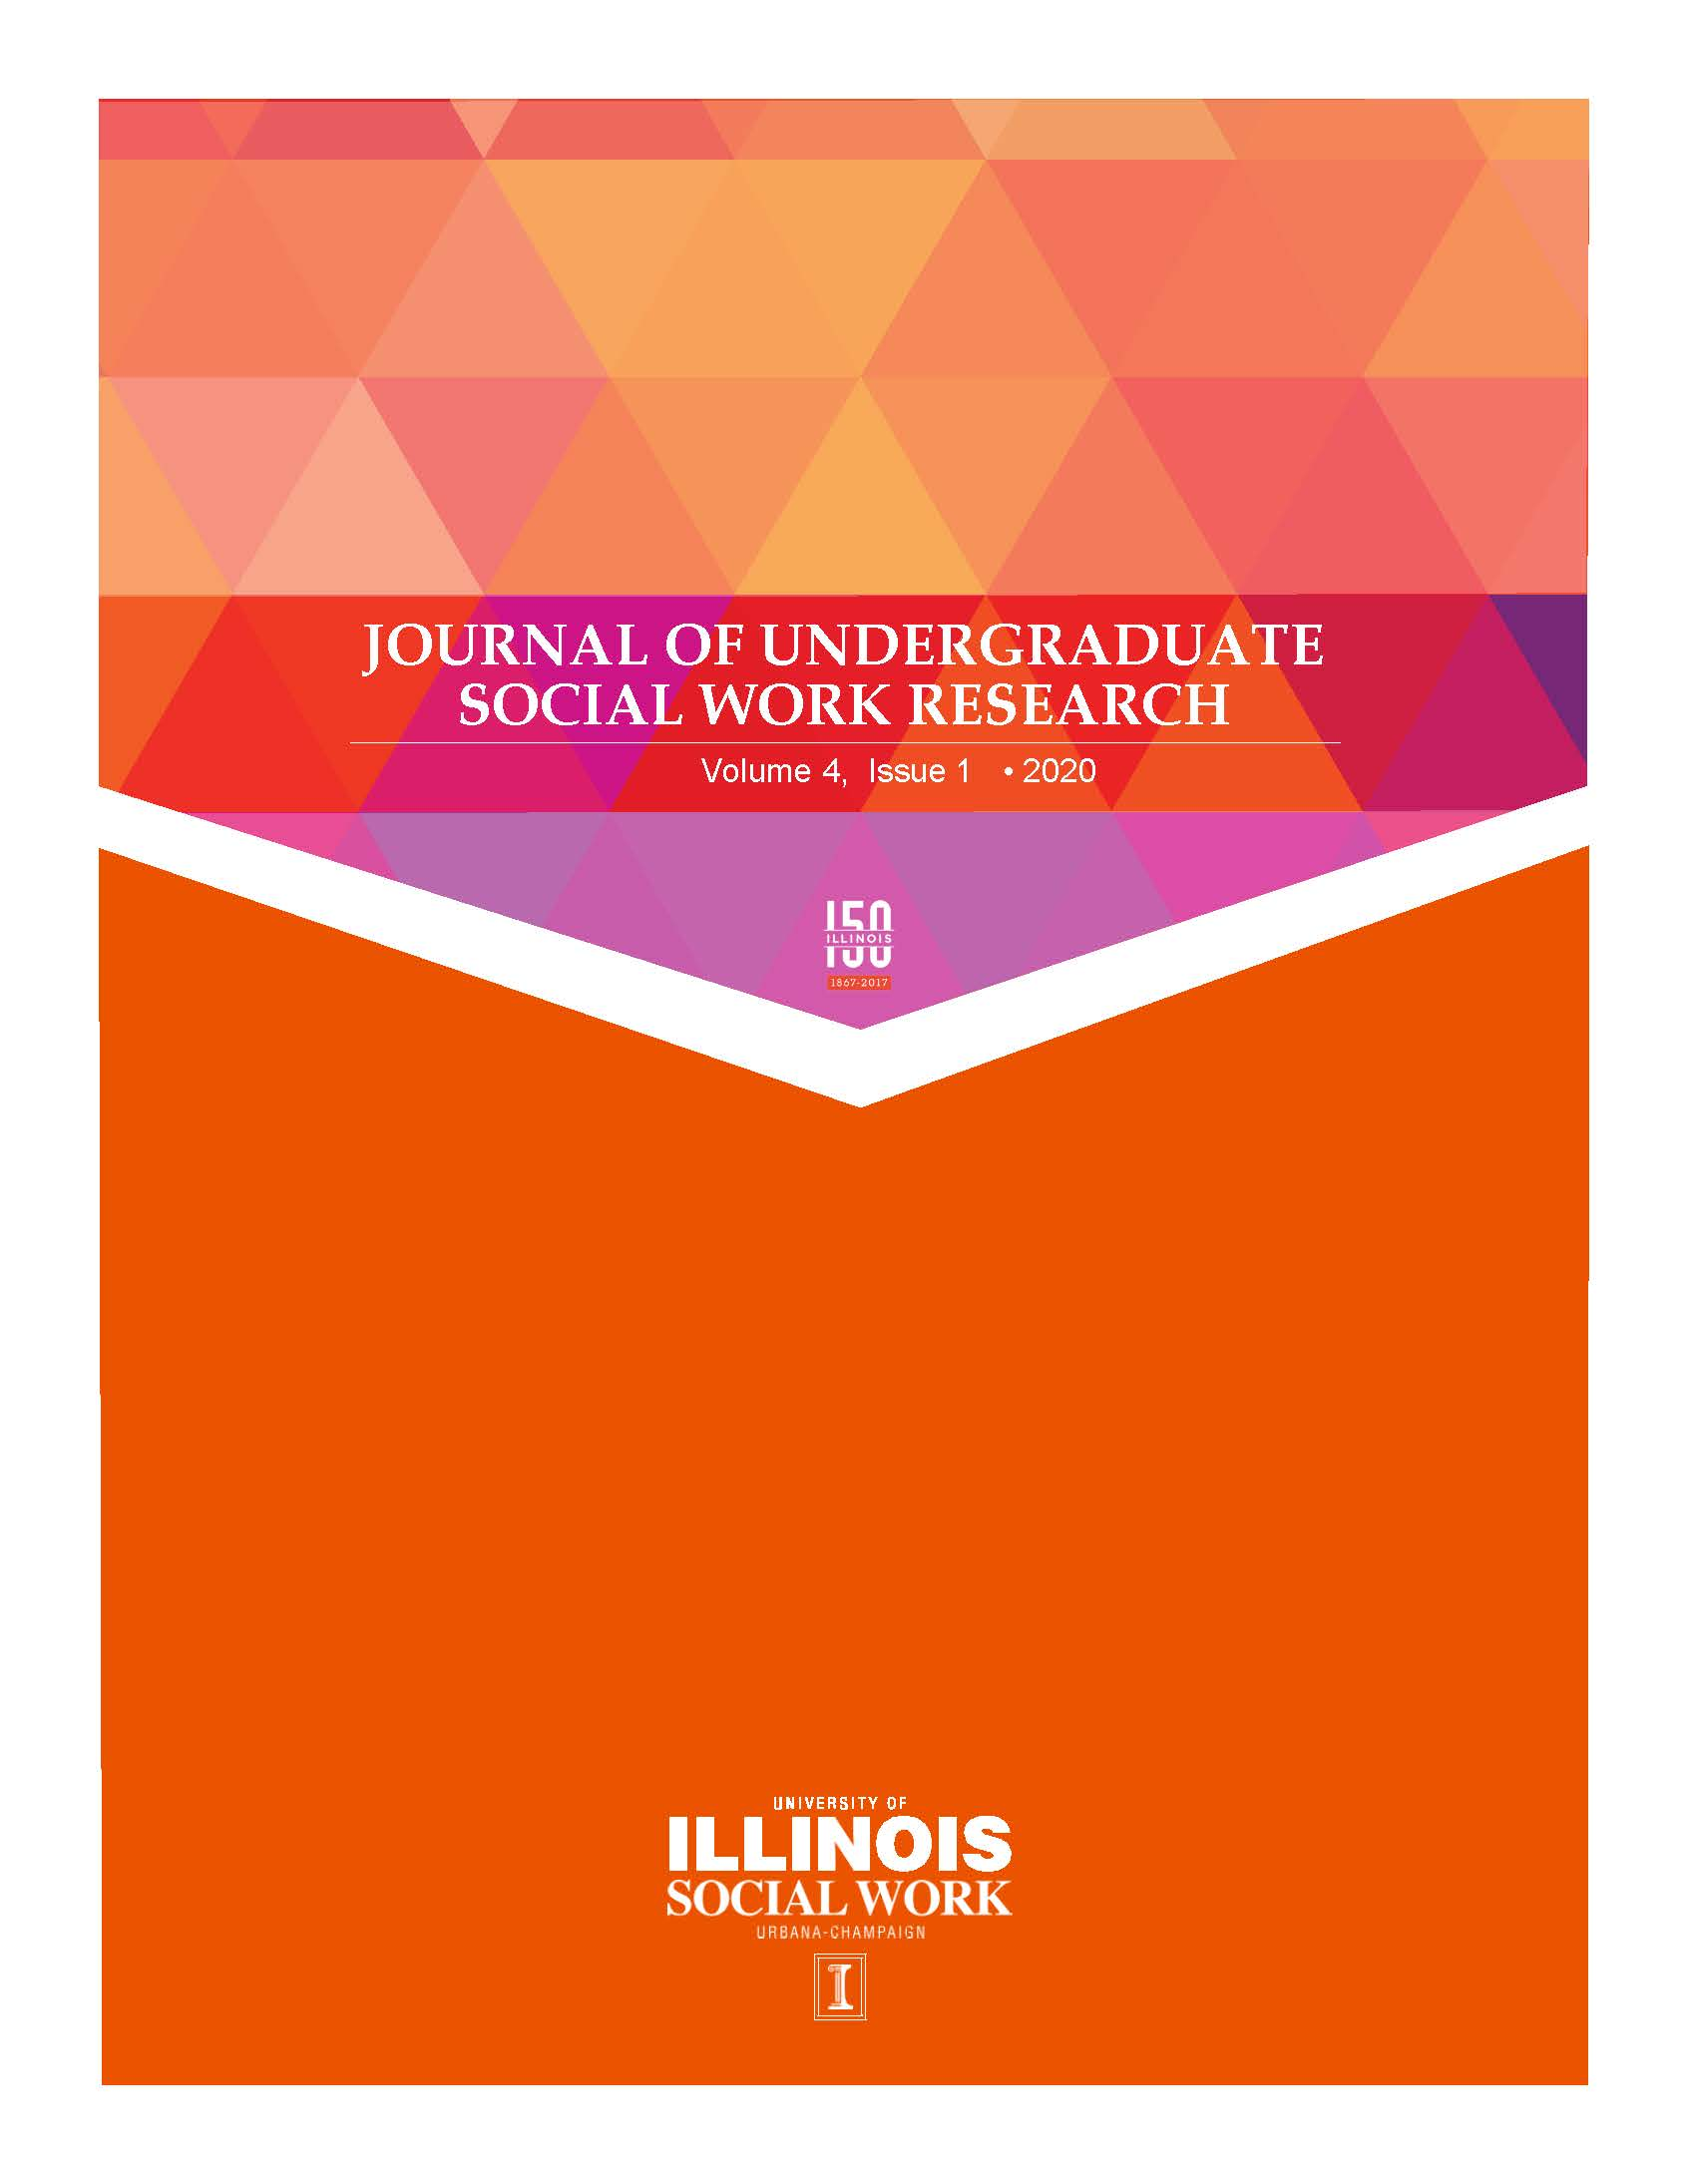 Journal of Undergraduate Social Work Research Vol 4, no. 1 cover with white font on orange background